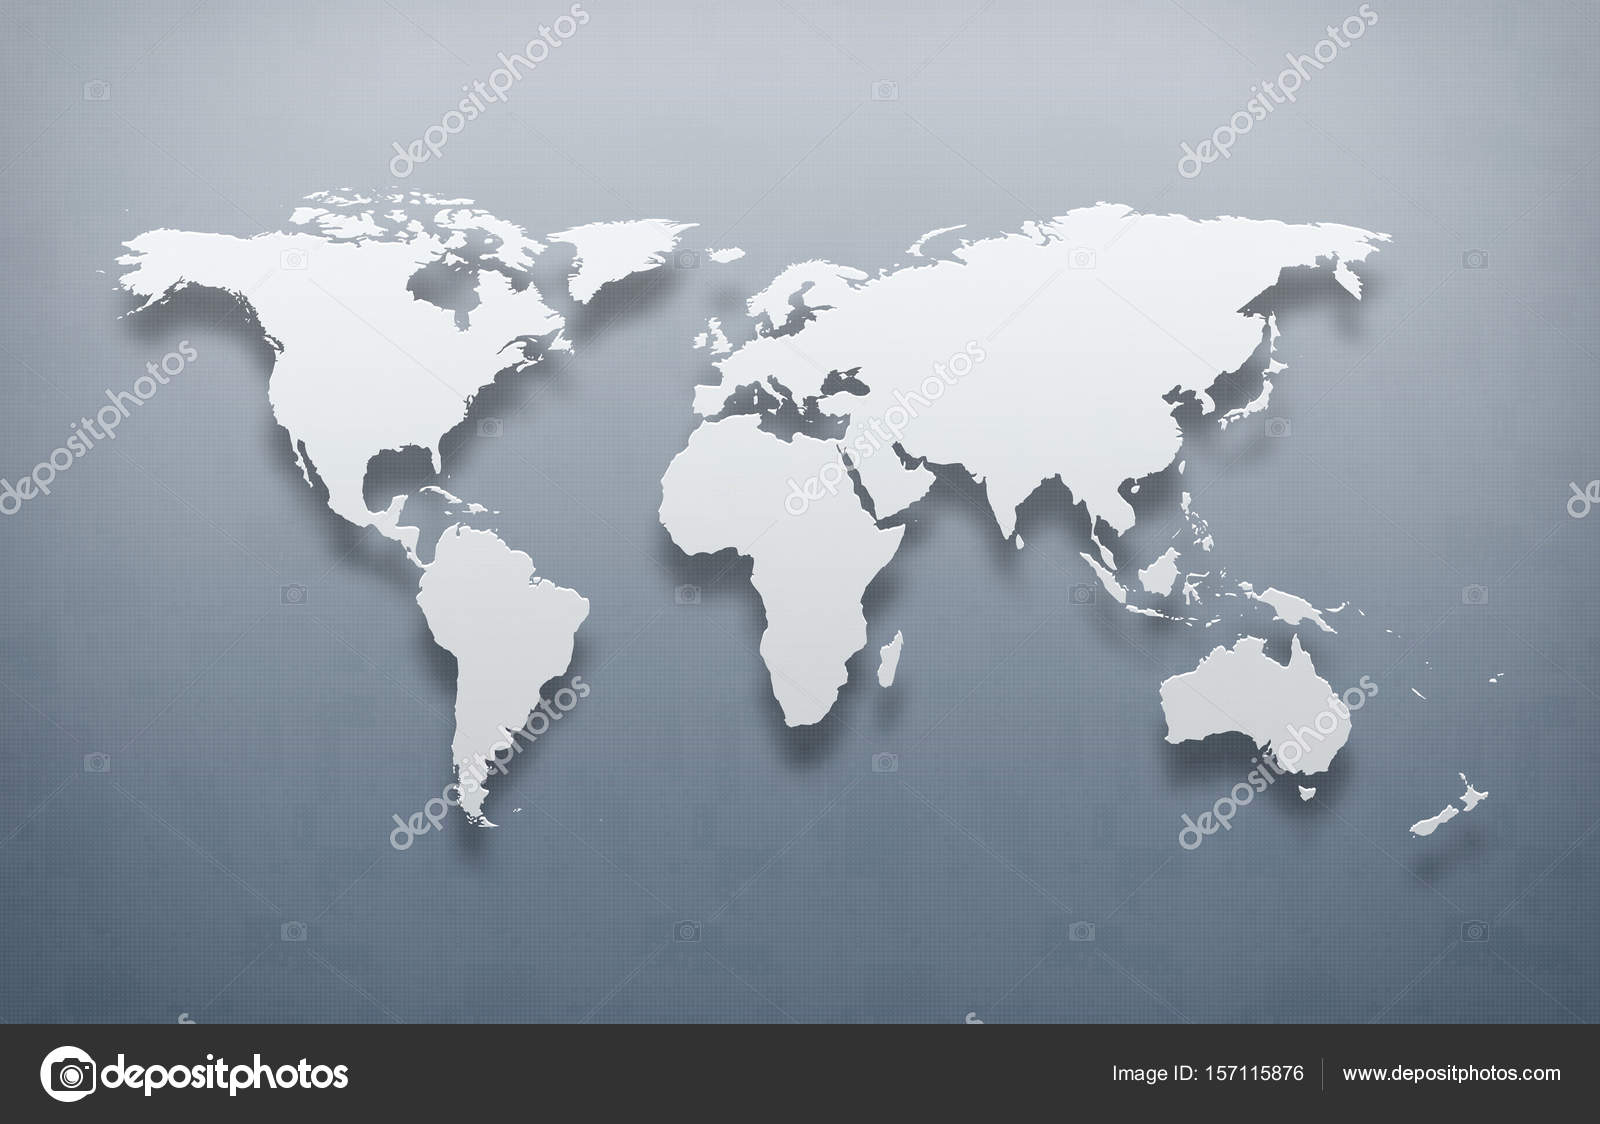 World map digital world map high tech map futuristic stock digital world map with vintage effect high resolution photo by designworkz gumiabroncs